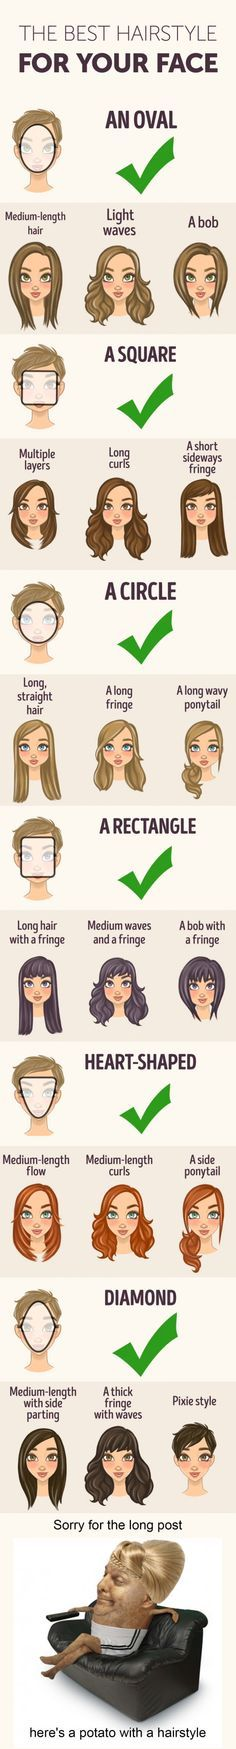 The best hairstyle for your face shape.